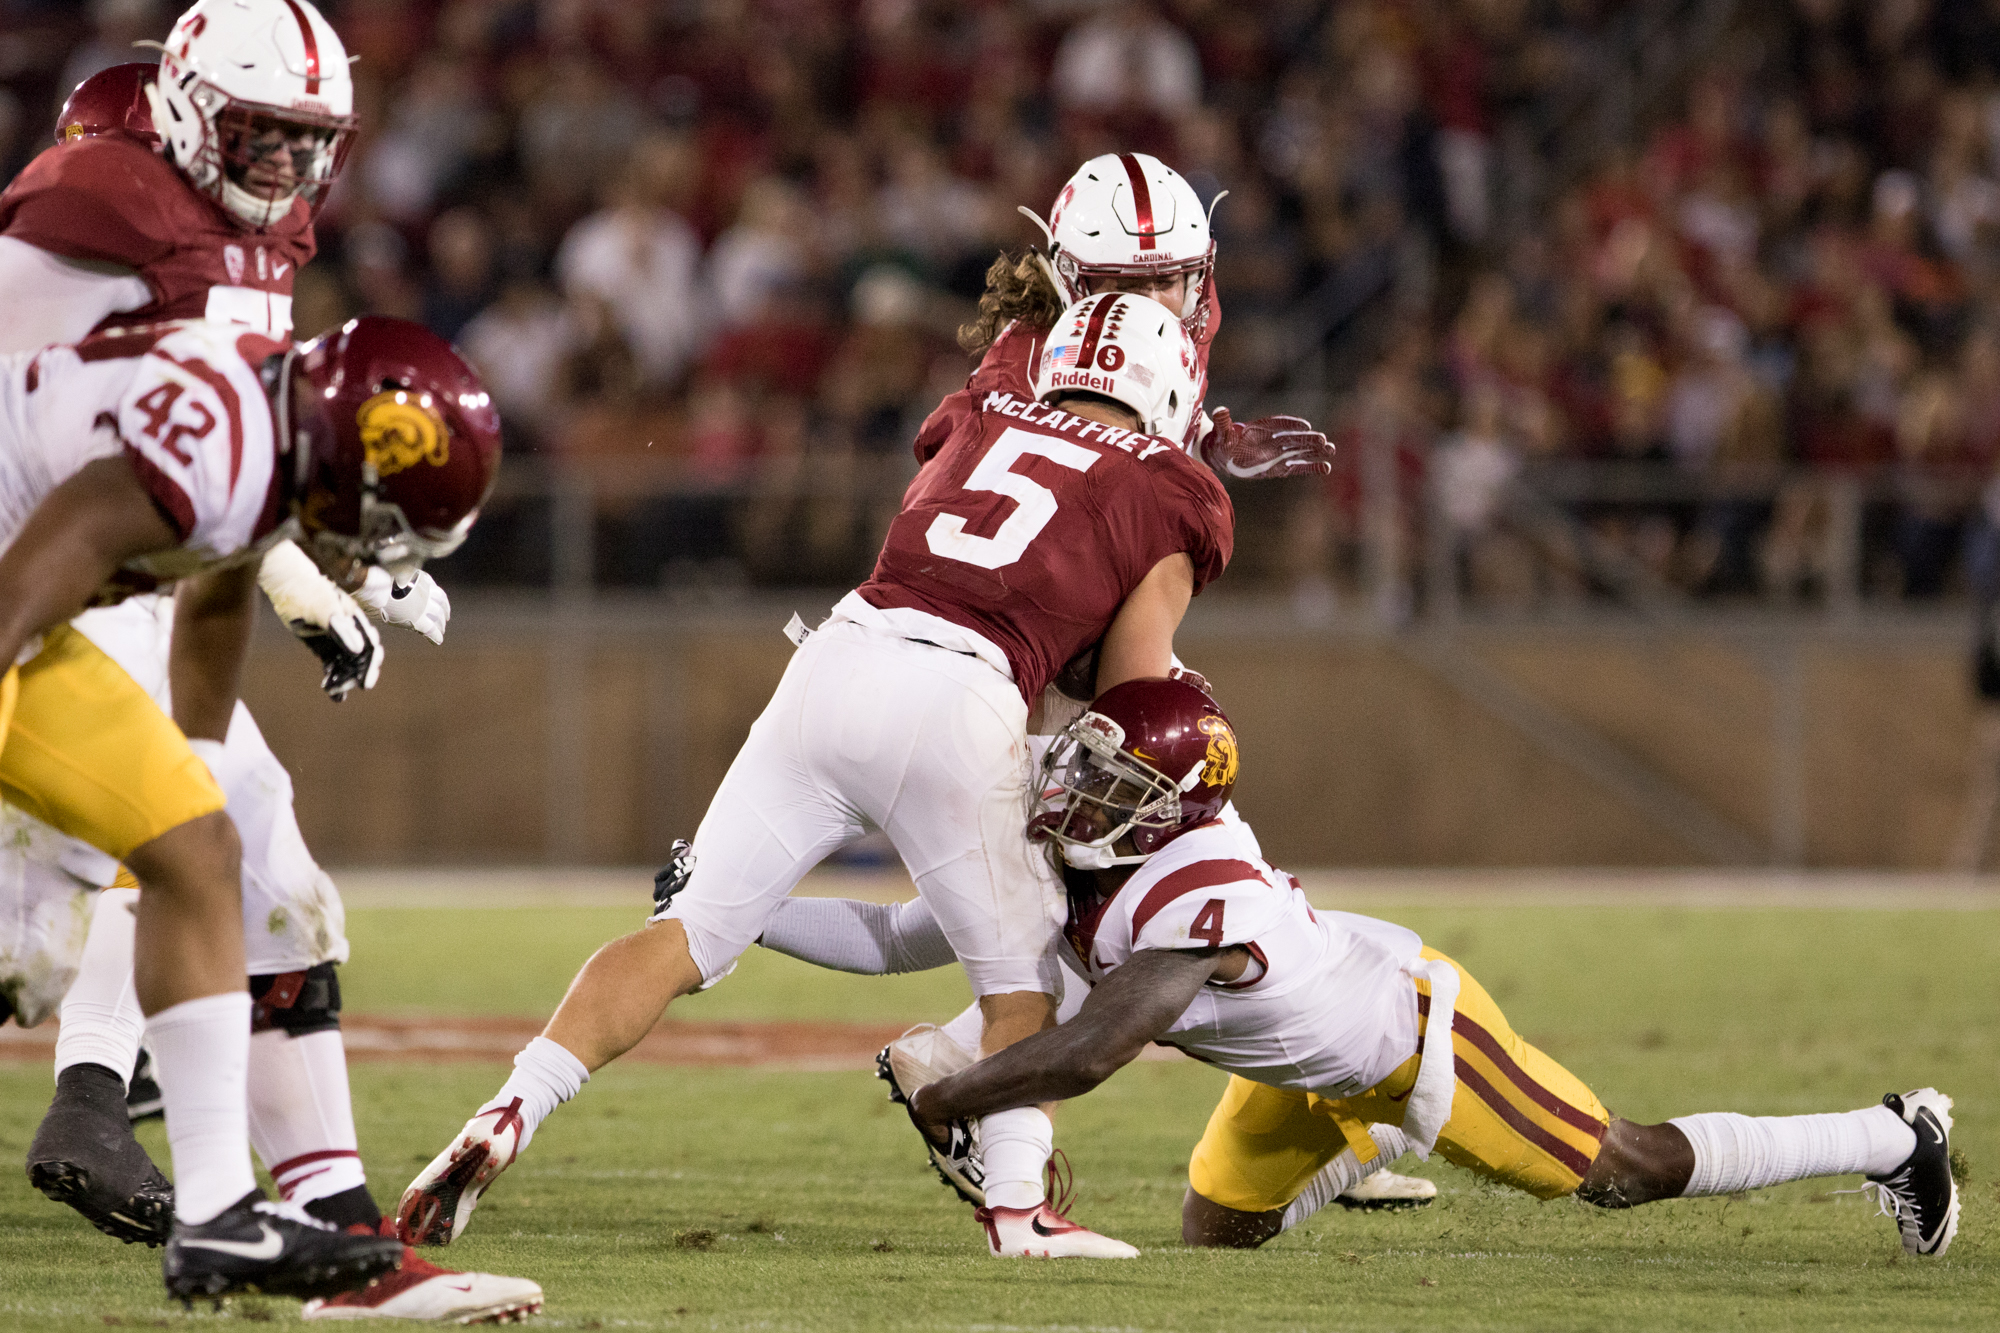 Nick Entin |Junior cornerback Adoree' Jackson tries to drag down Stanford's Christian McCaffrey. McCaffrey finished with 165 yards rushing and 260 all-purpose yards.